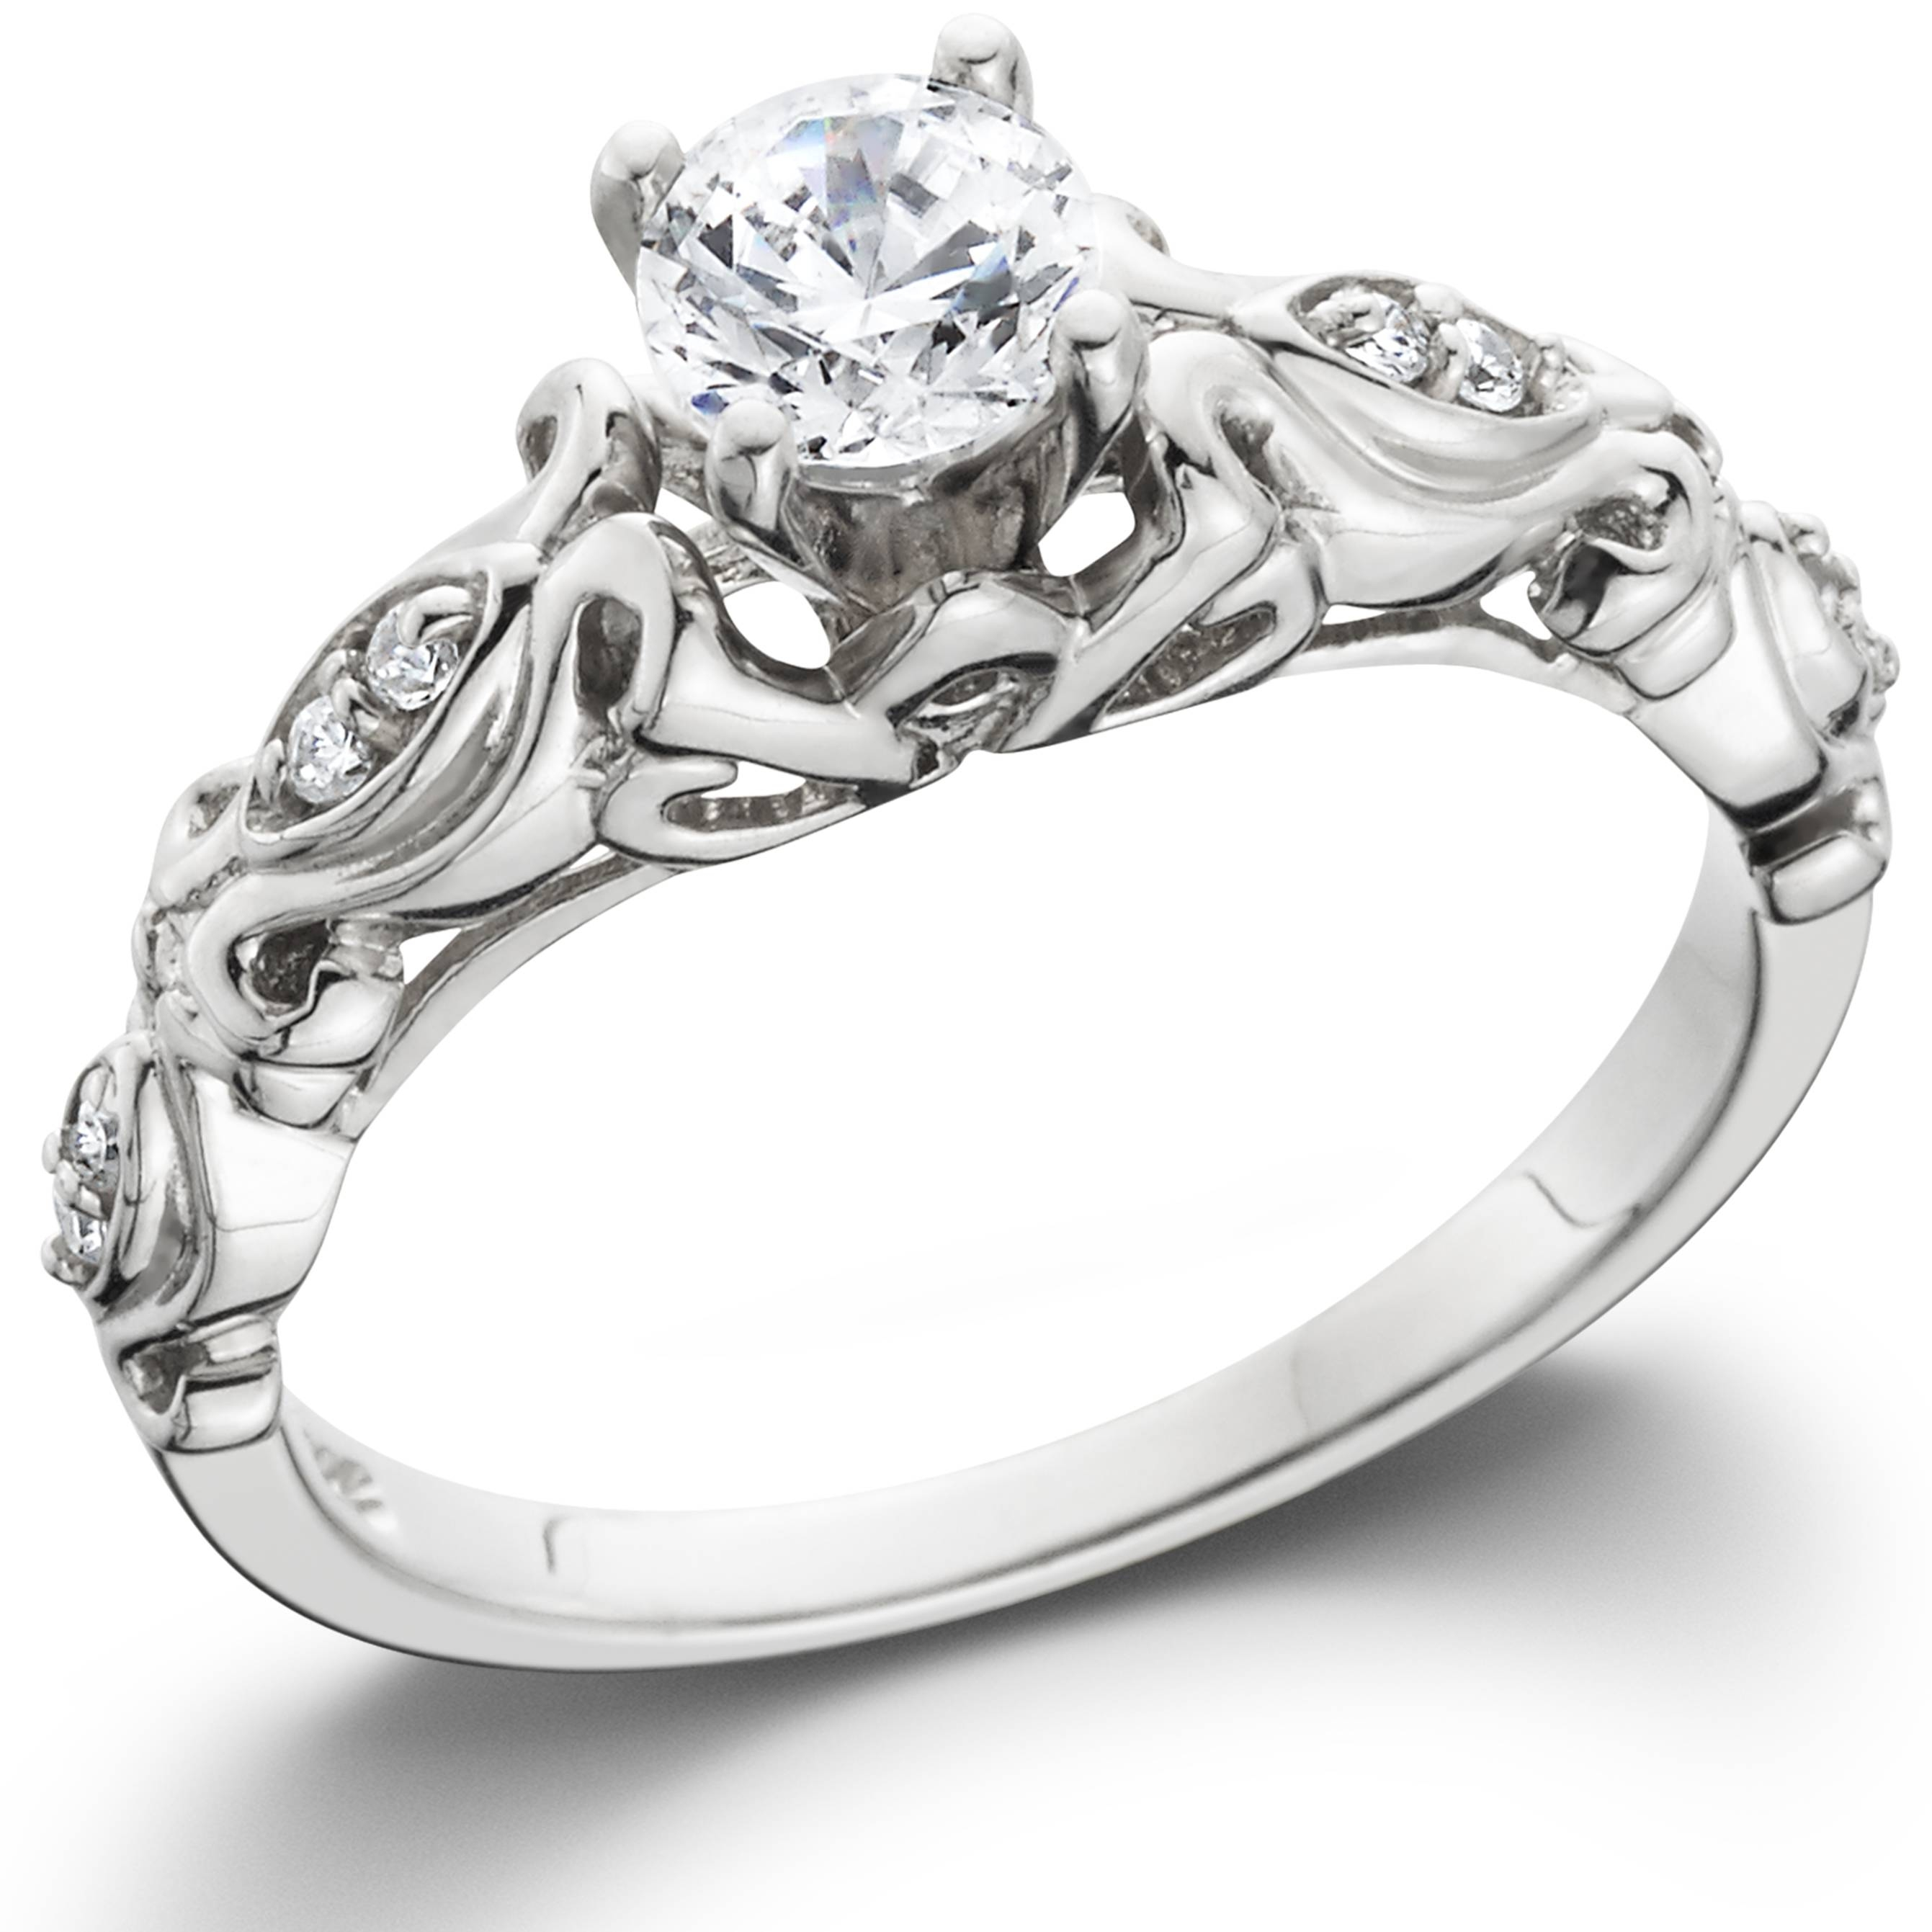 product home p page solitaire engagement diamond platinum fine wedding jewellery rings face